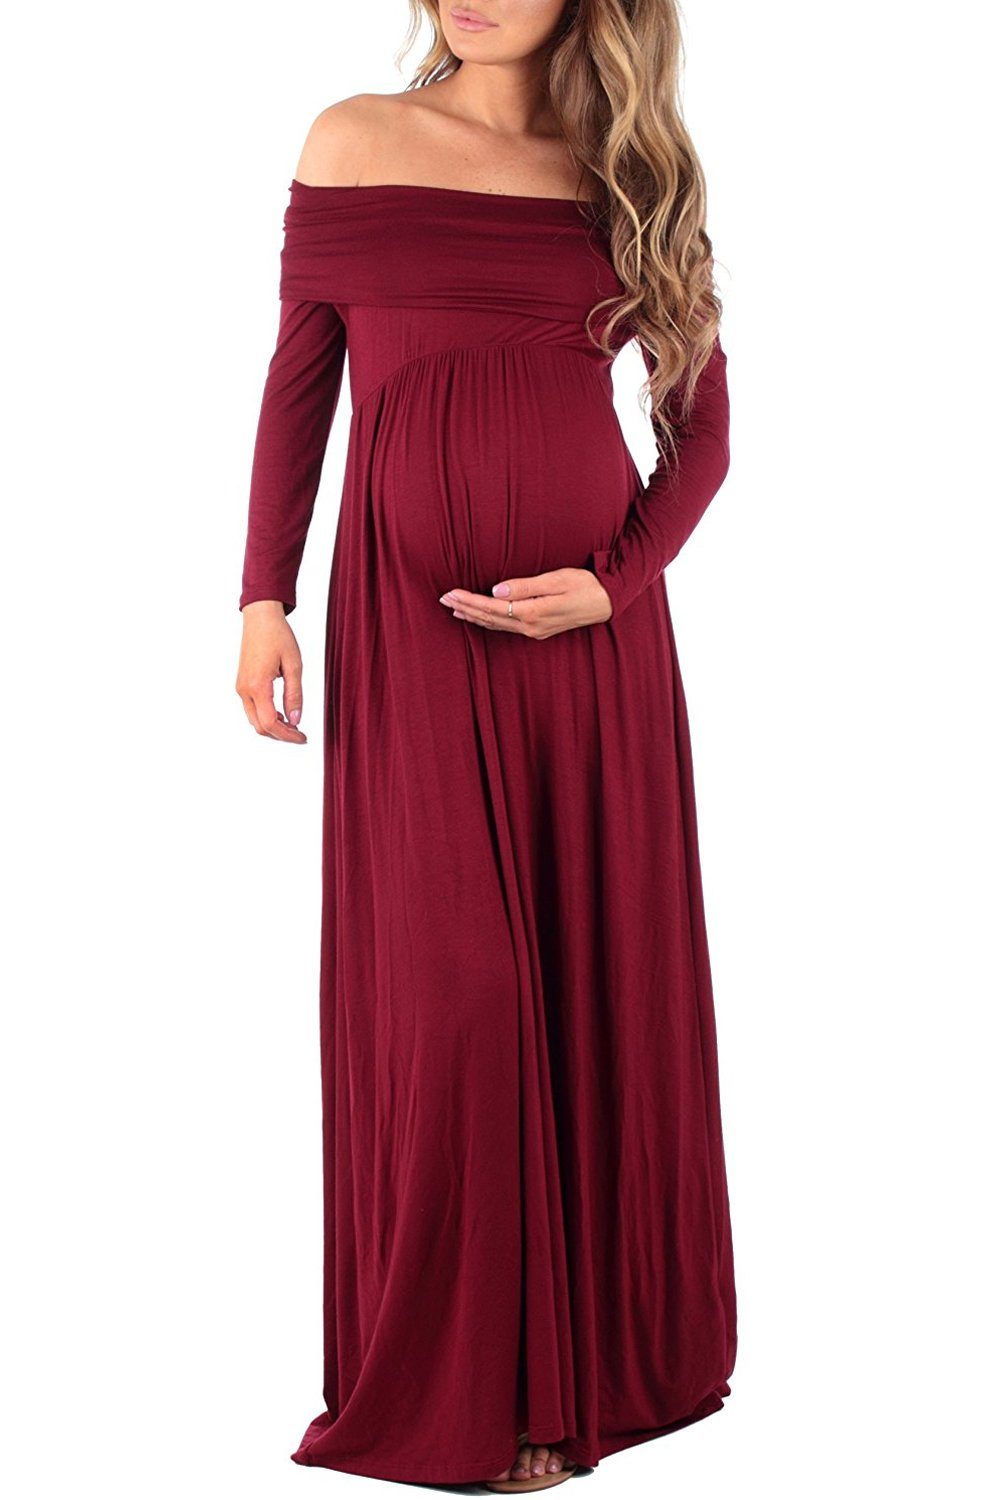 MANNEW Maternity Dress Over Shoulder Maxi Dress Casual Wrap Pregnancy Long Sleeve Gowns (Burgundy, Small)